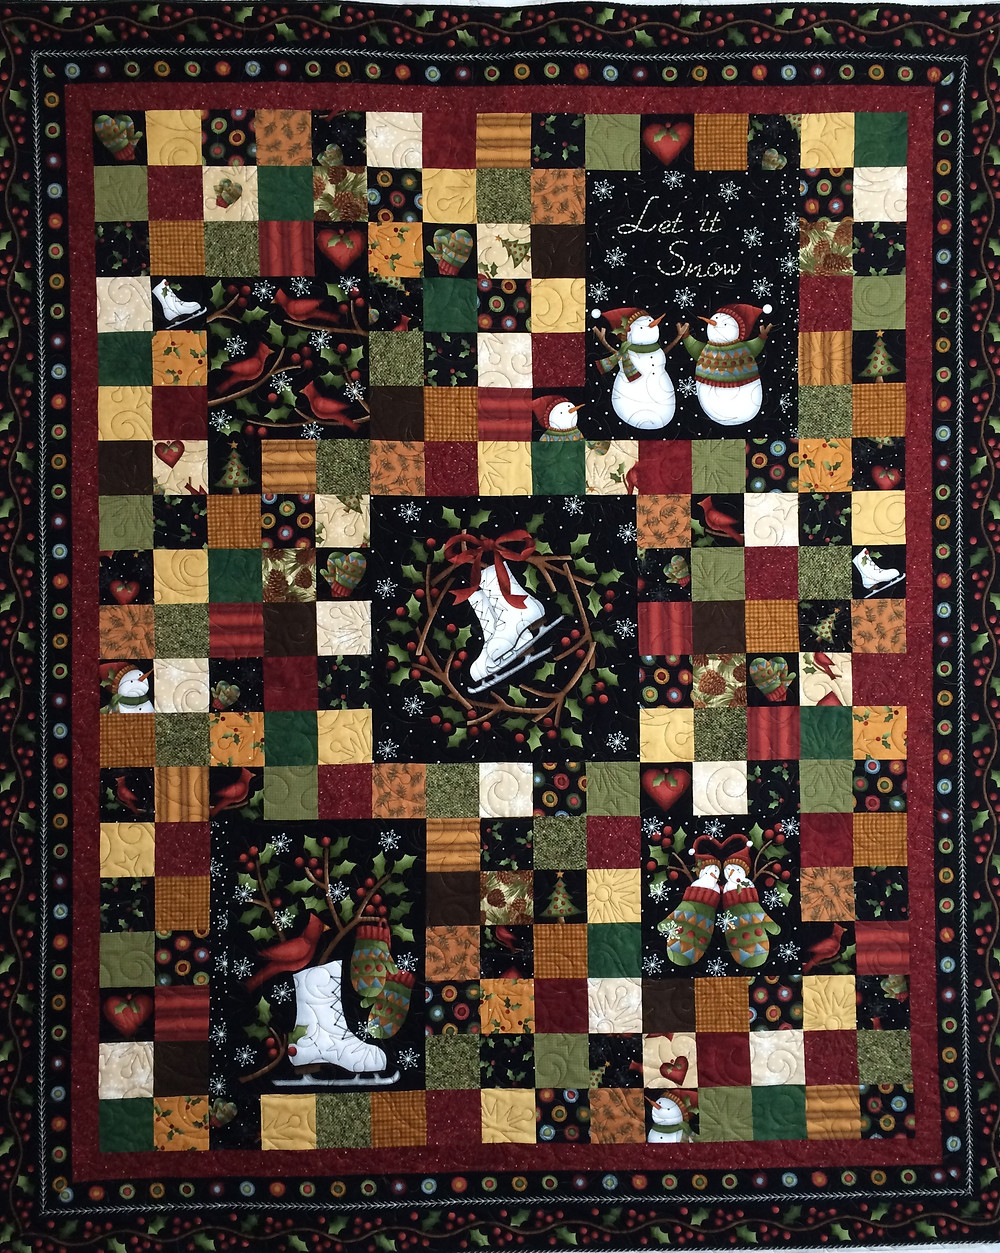 Leslie Christmas Quilt in Flannel